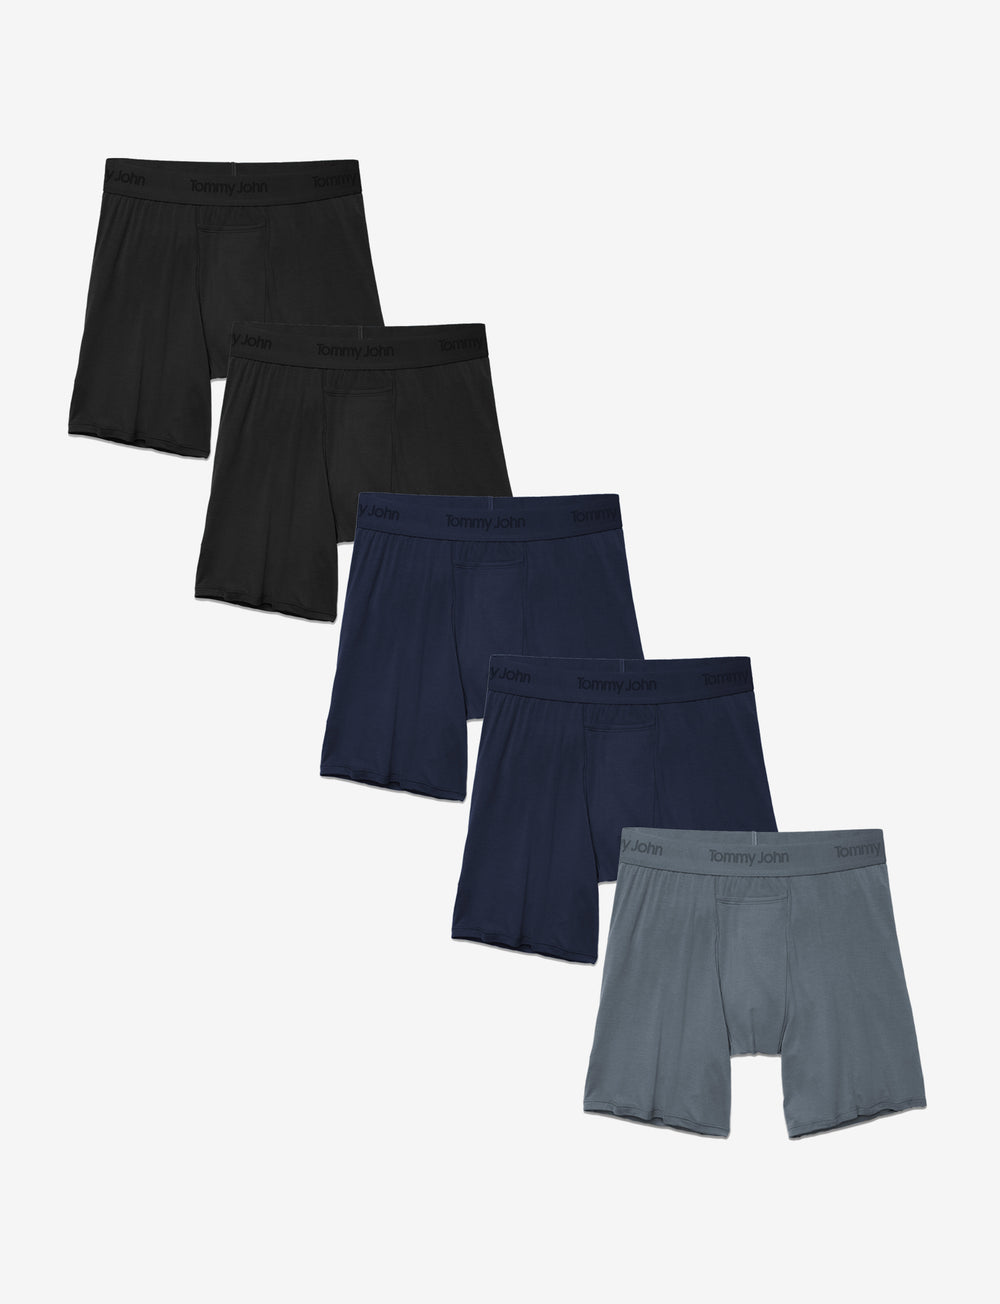 Second Skin Relaxed Fit Boxer 5 Pack Details Image